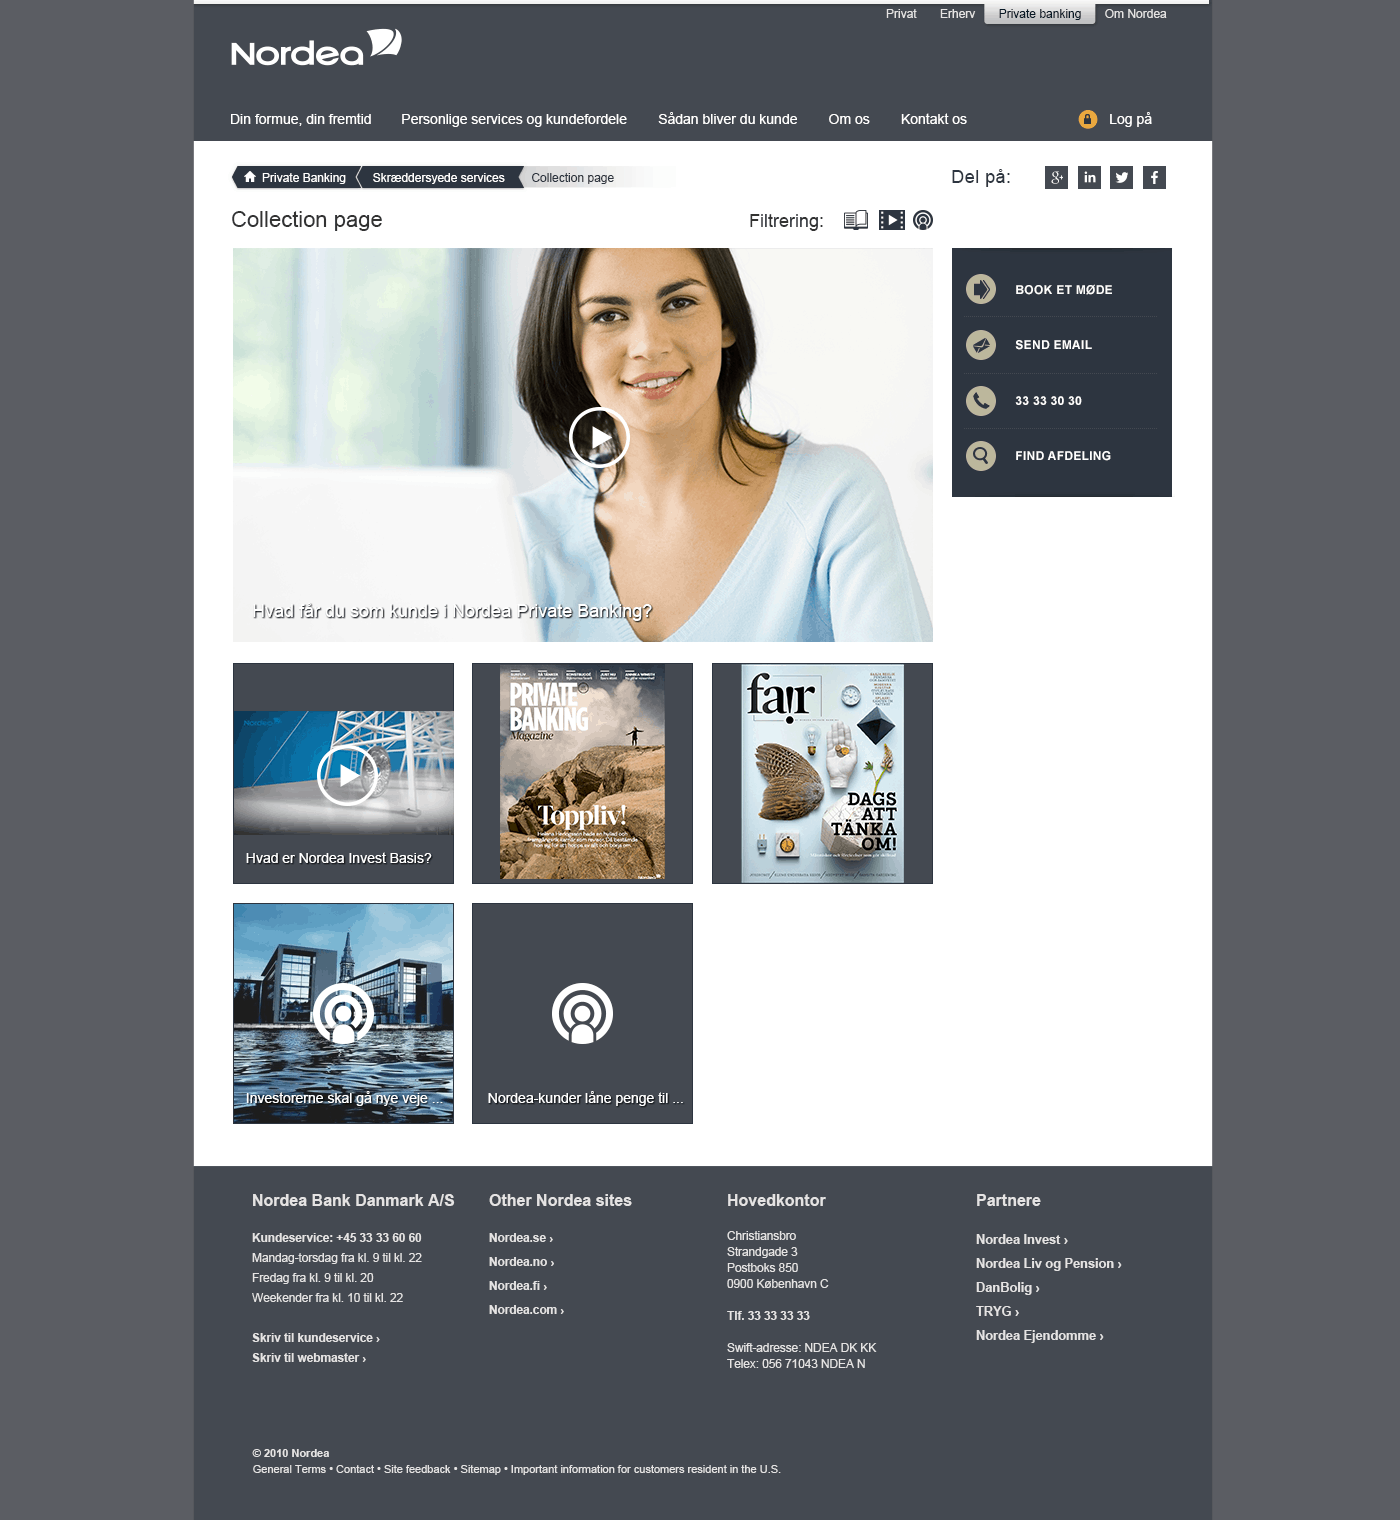 Nordeaprivatebanking_Collection_page_26_08_2015